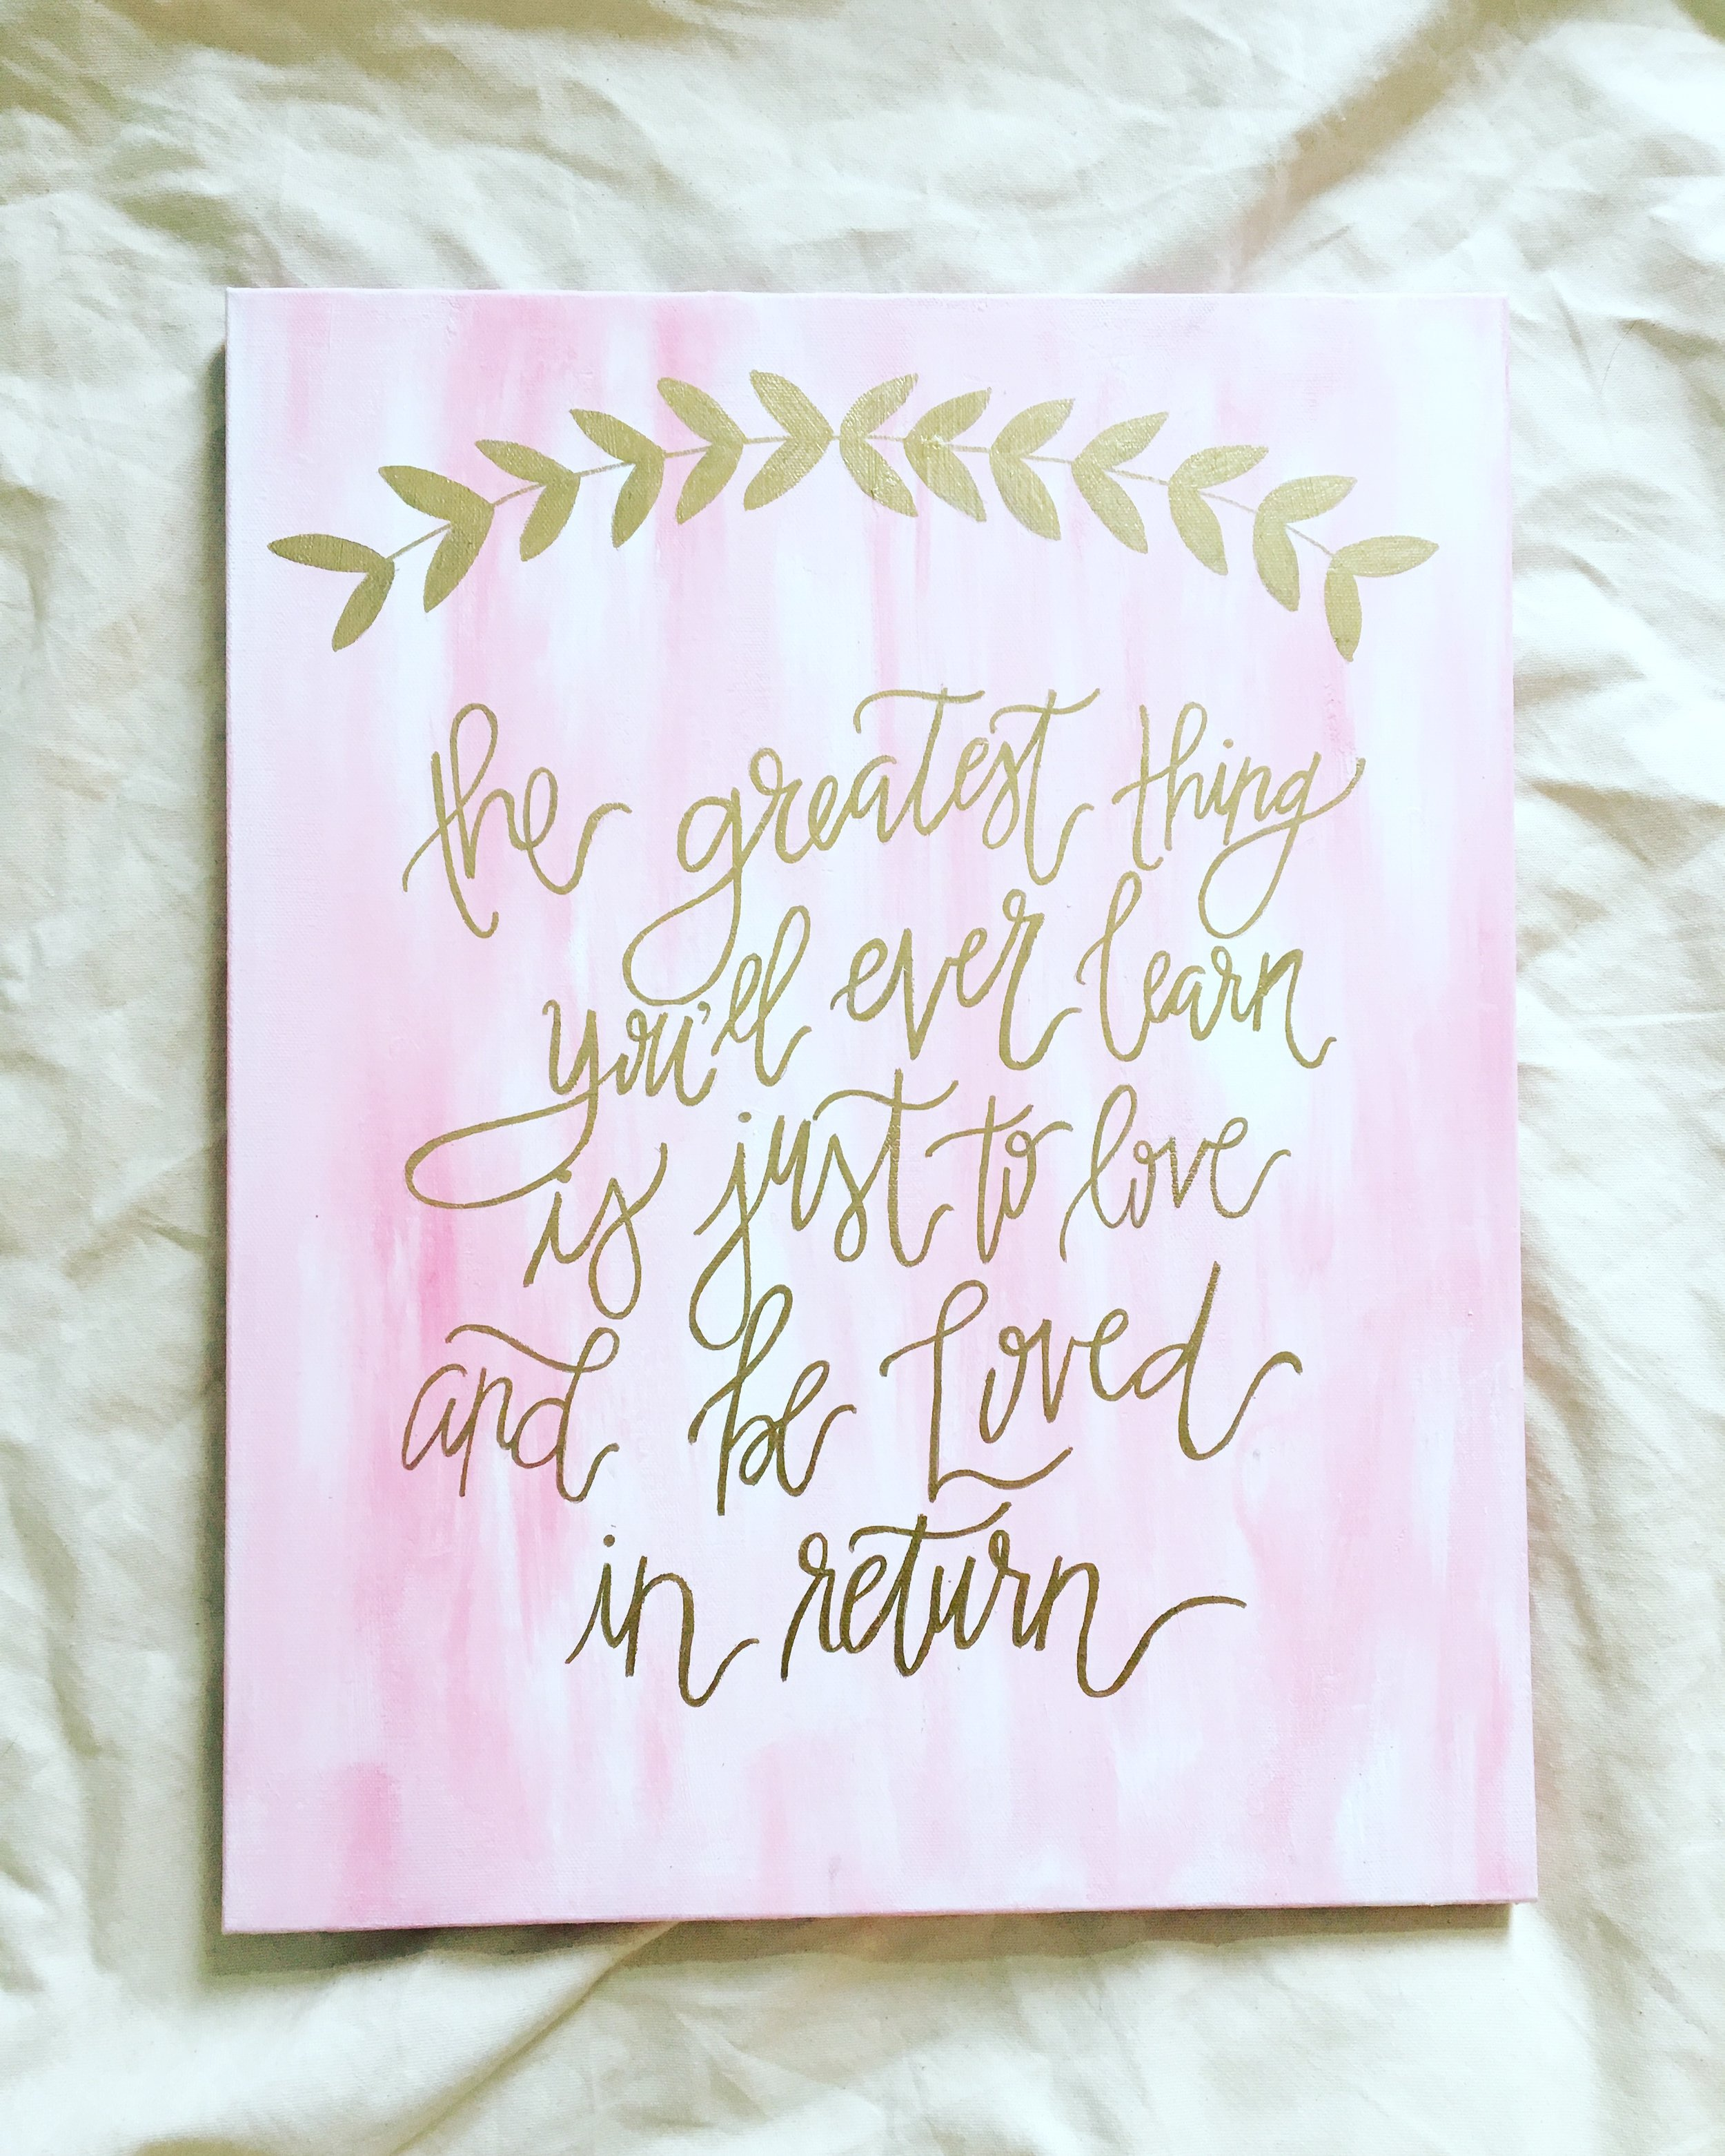 LOVE quote canvas.jpg